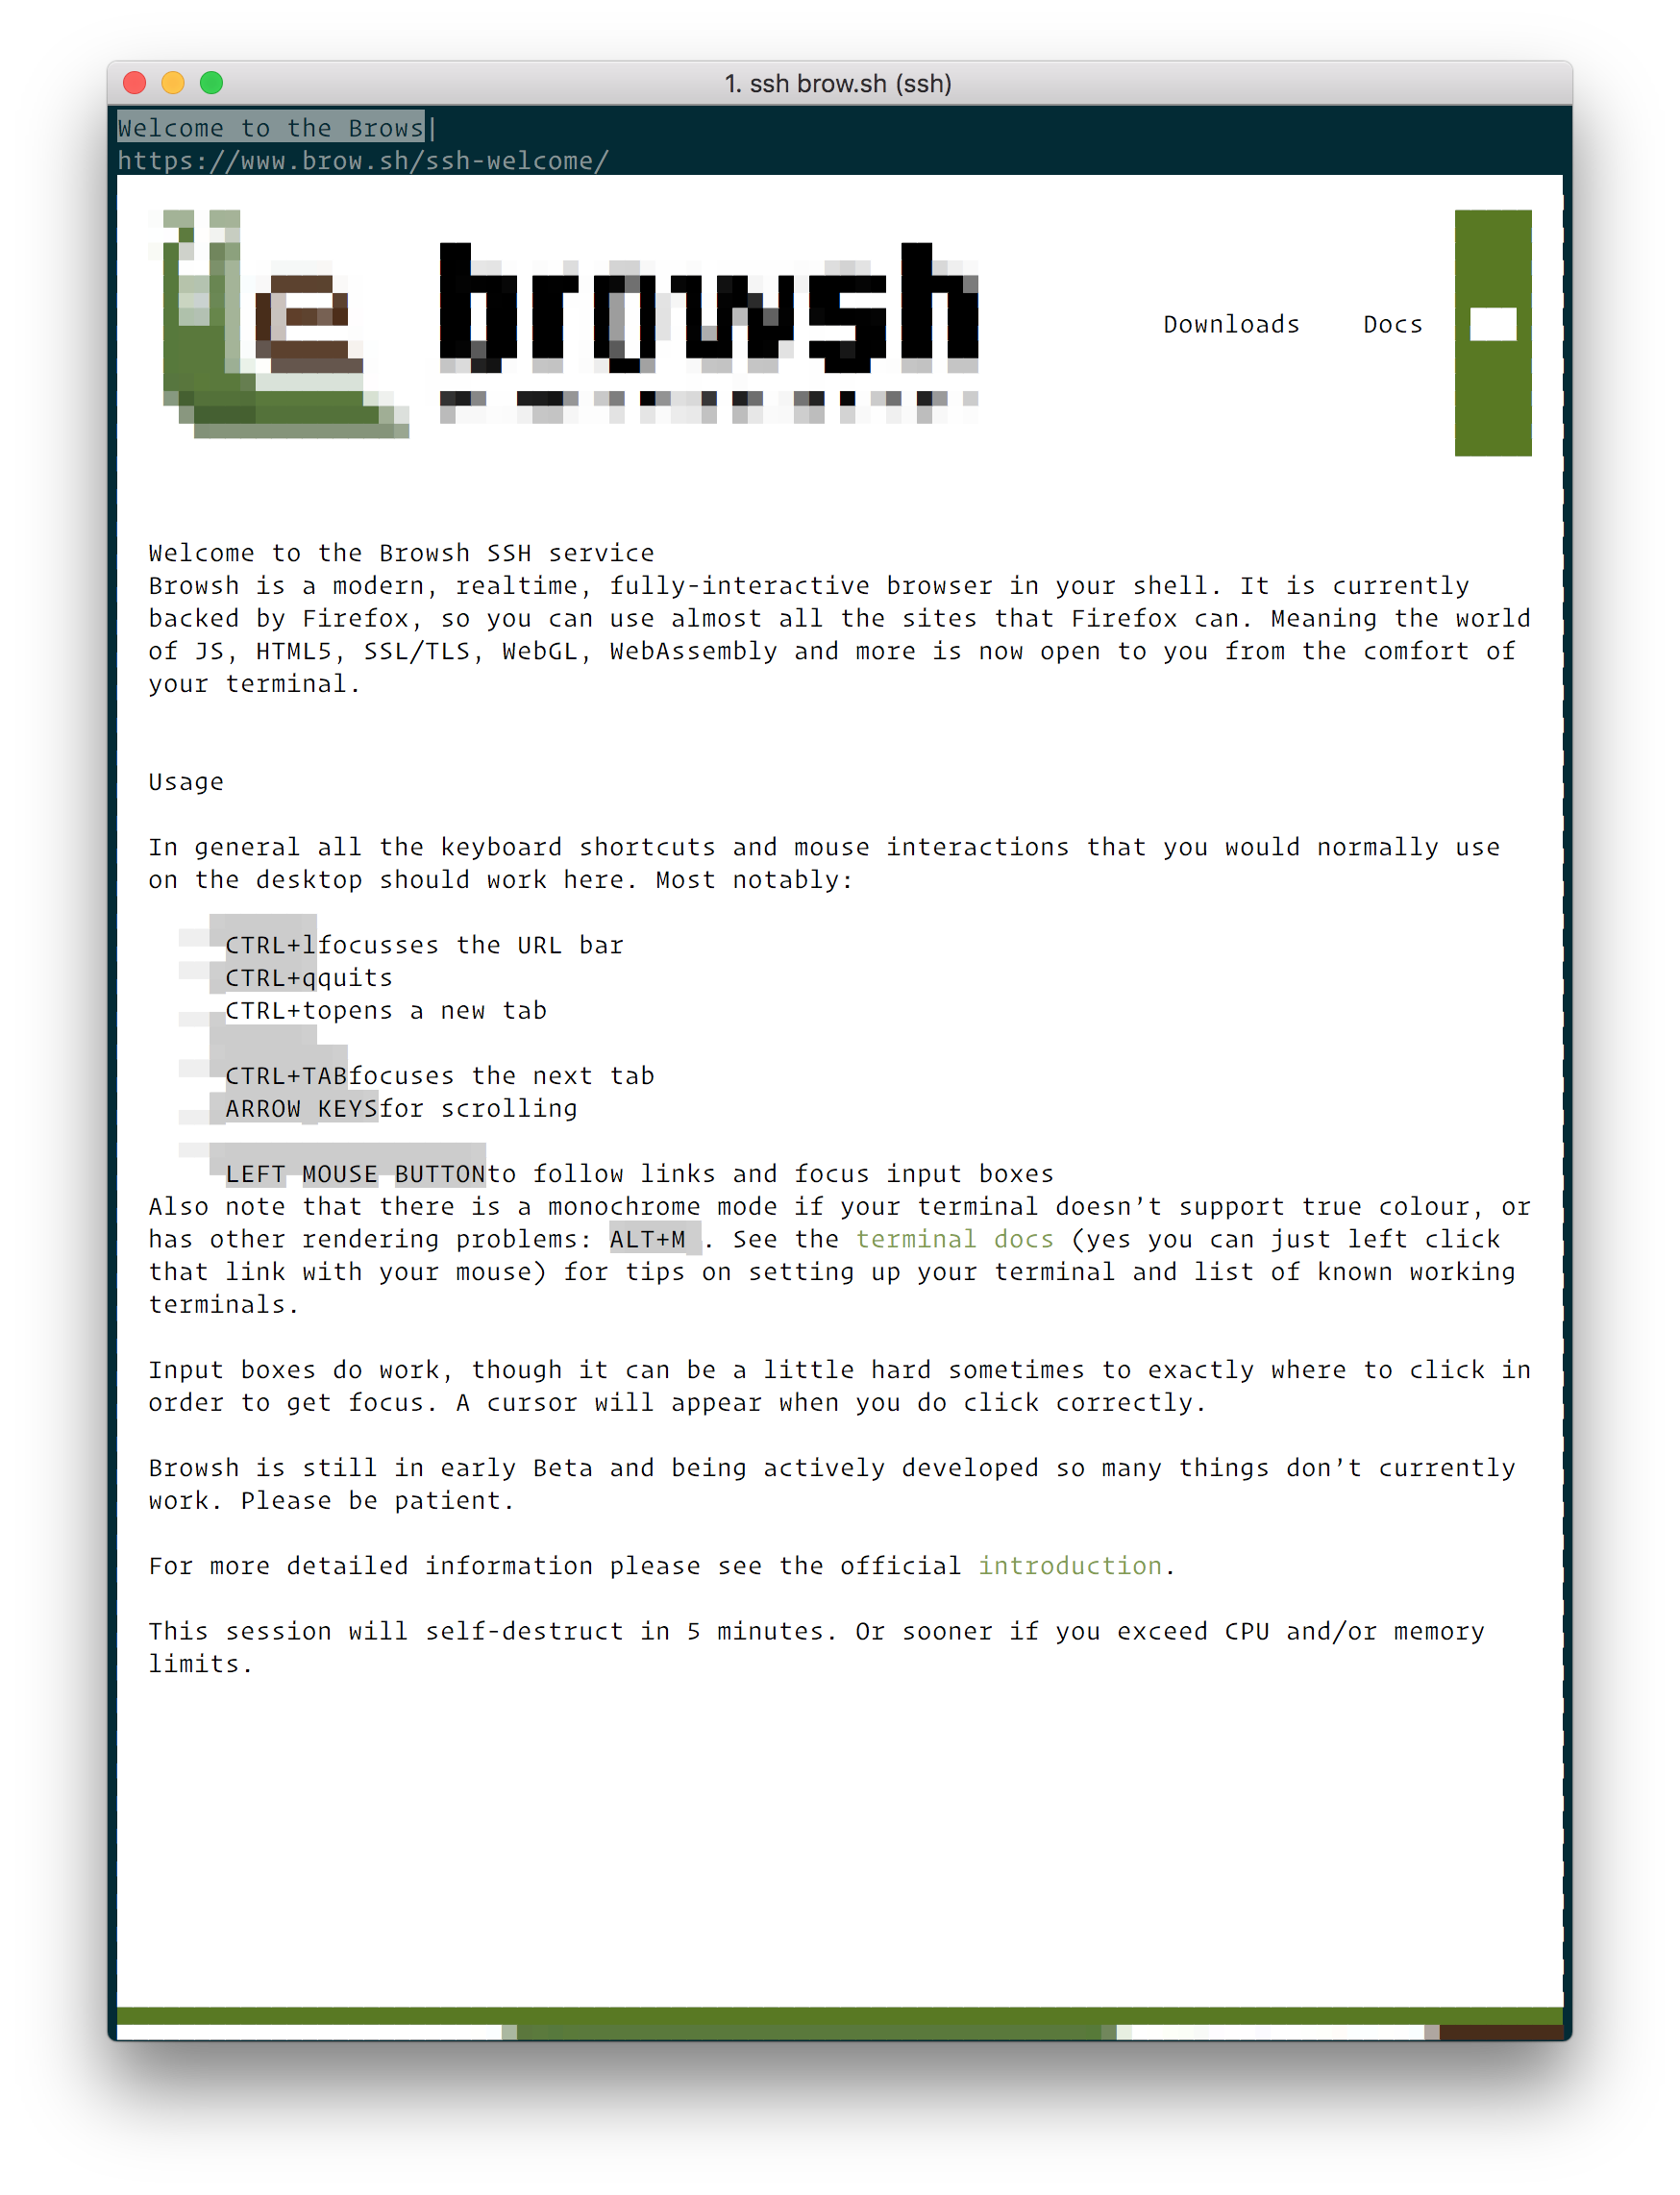 Browsh homepage